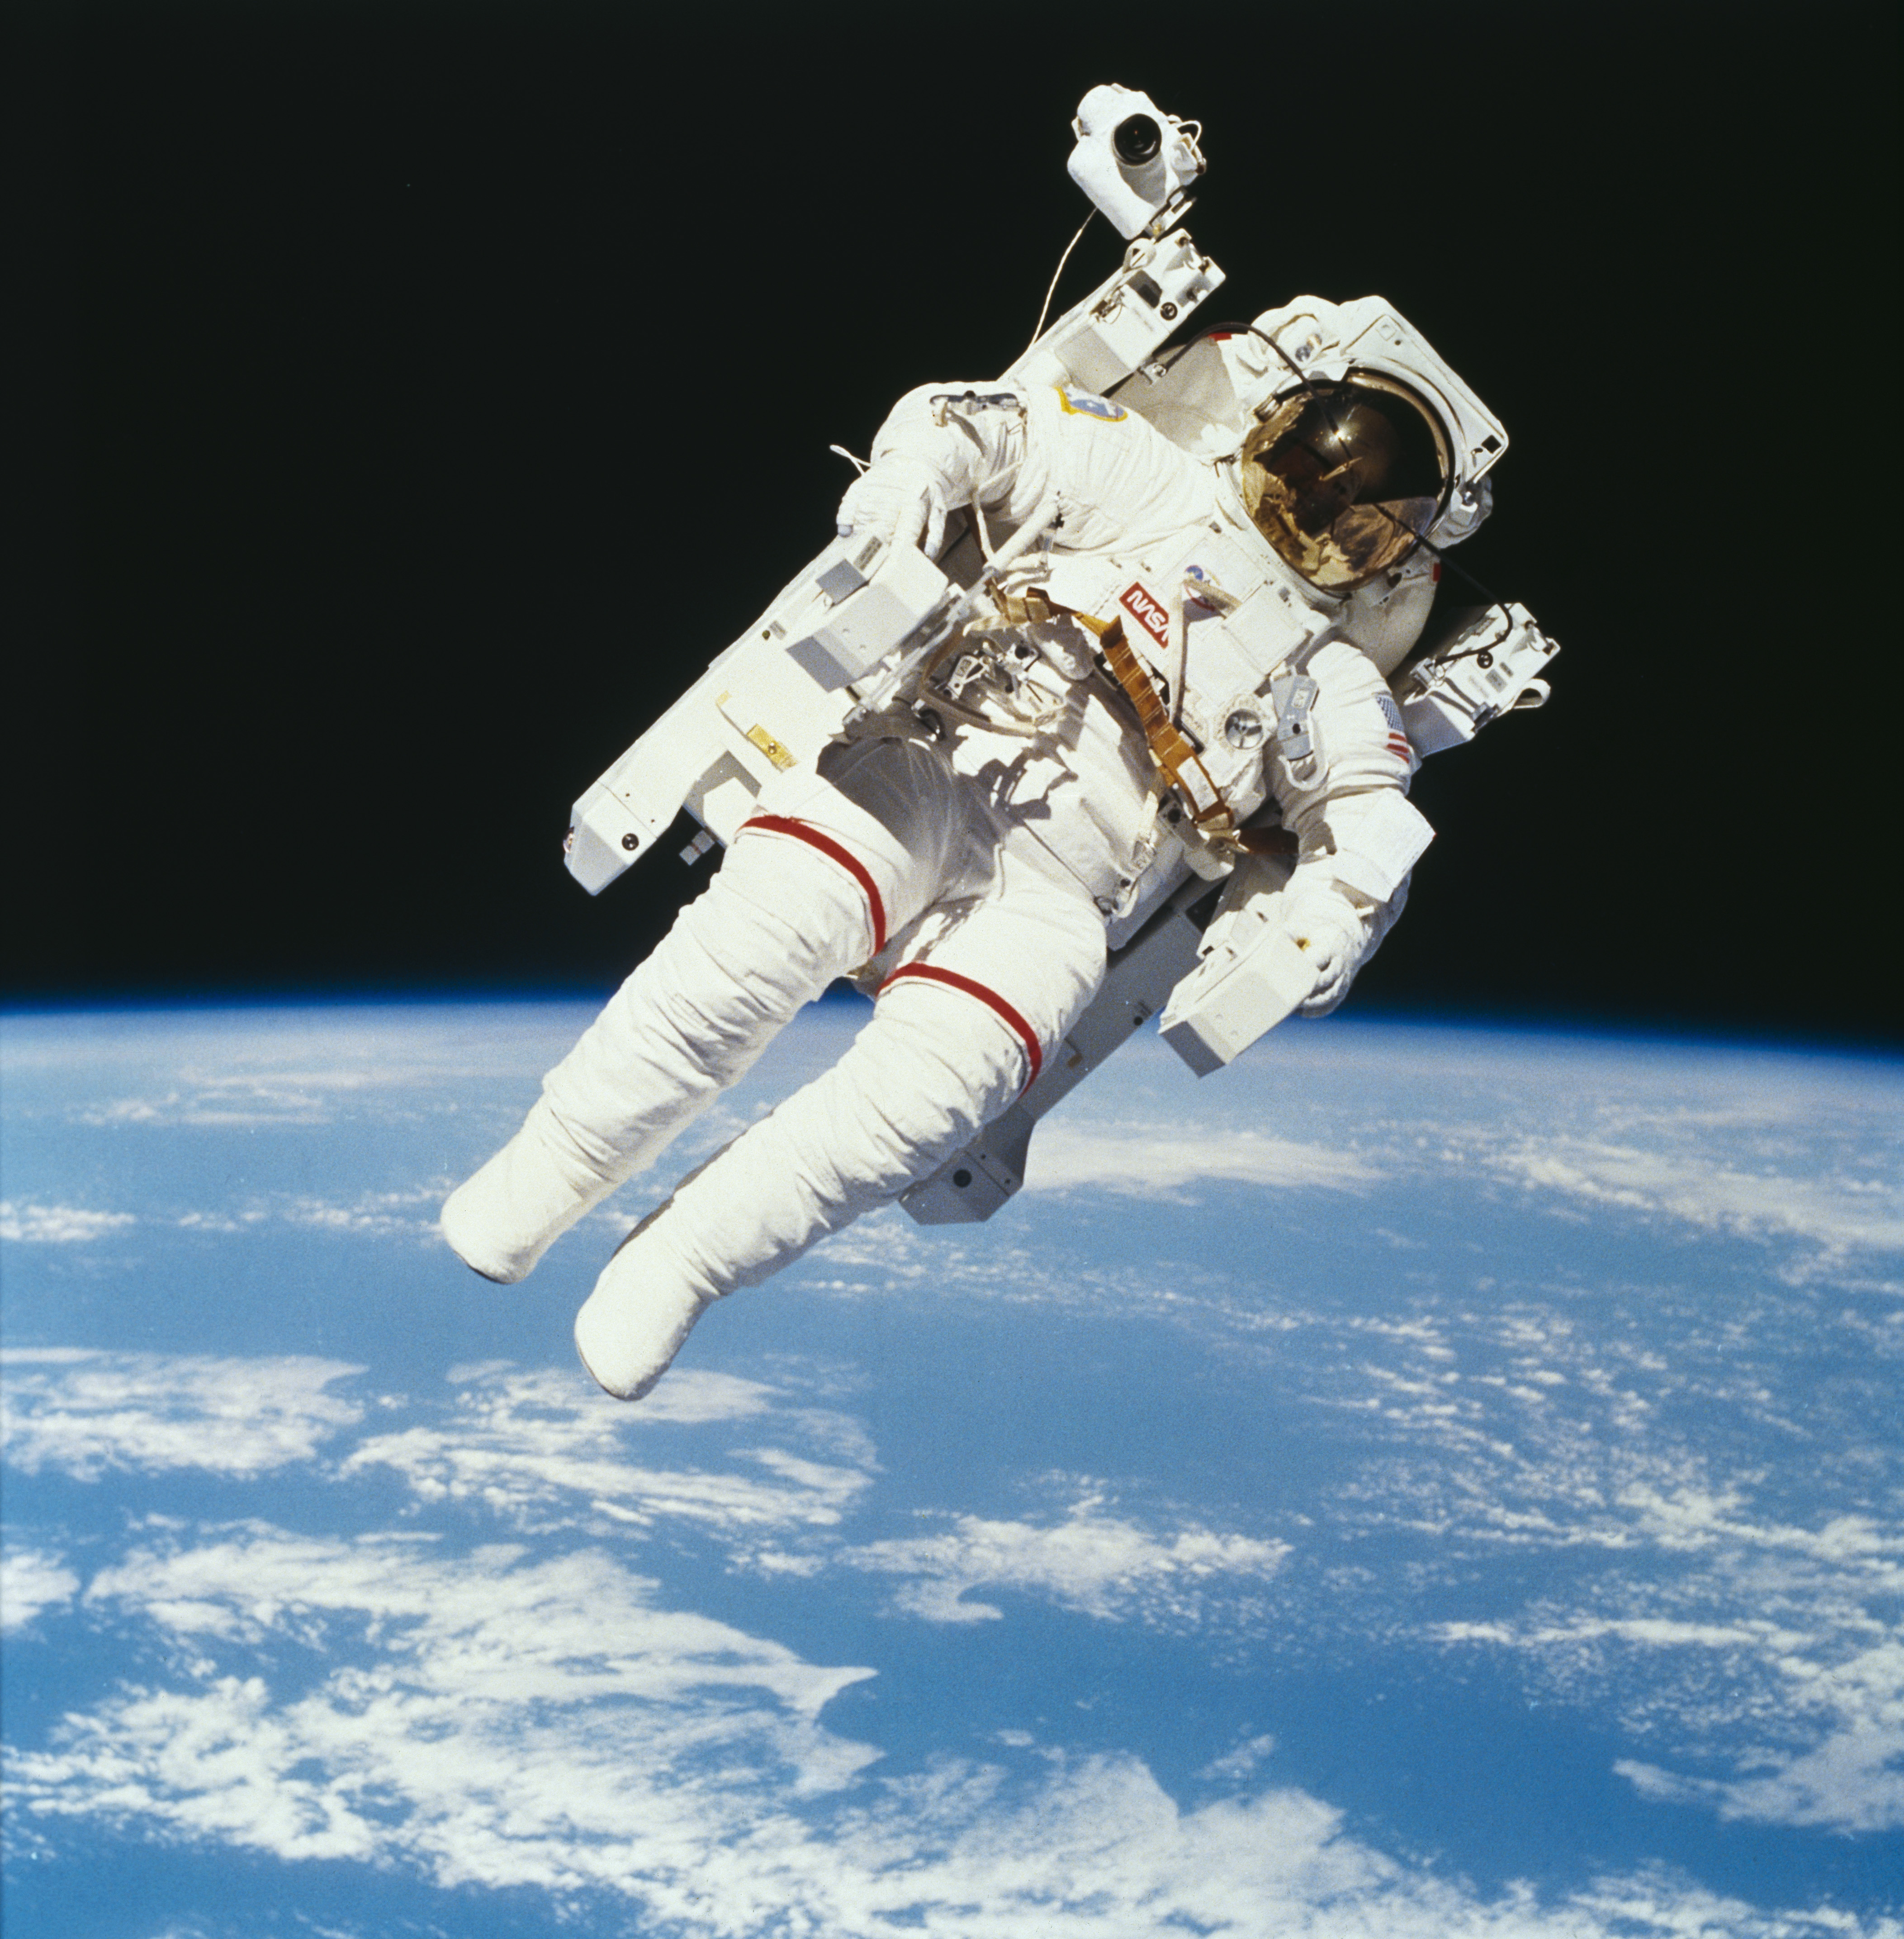 nasa suspended space program for three years after challenger